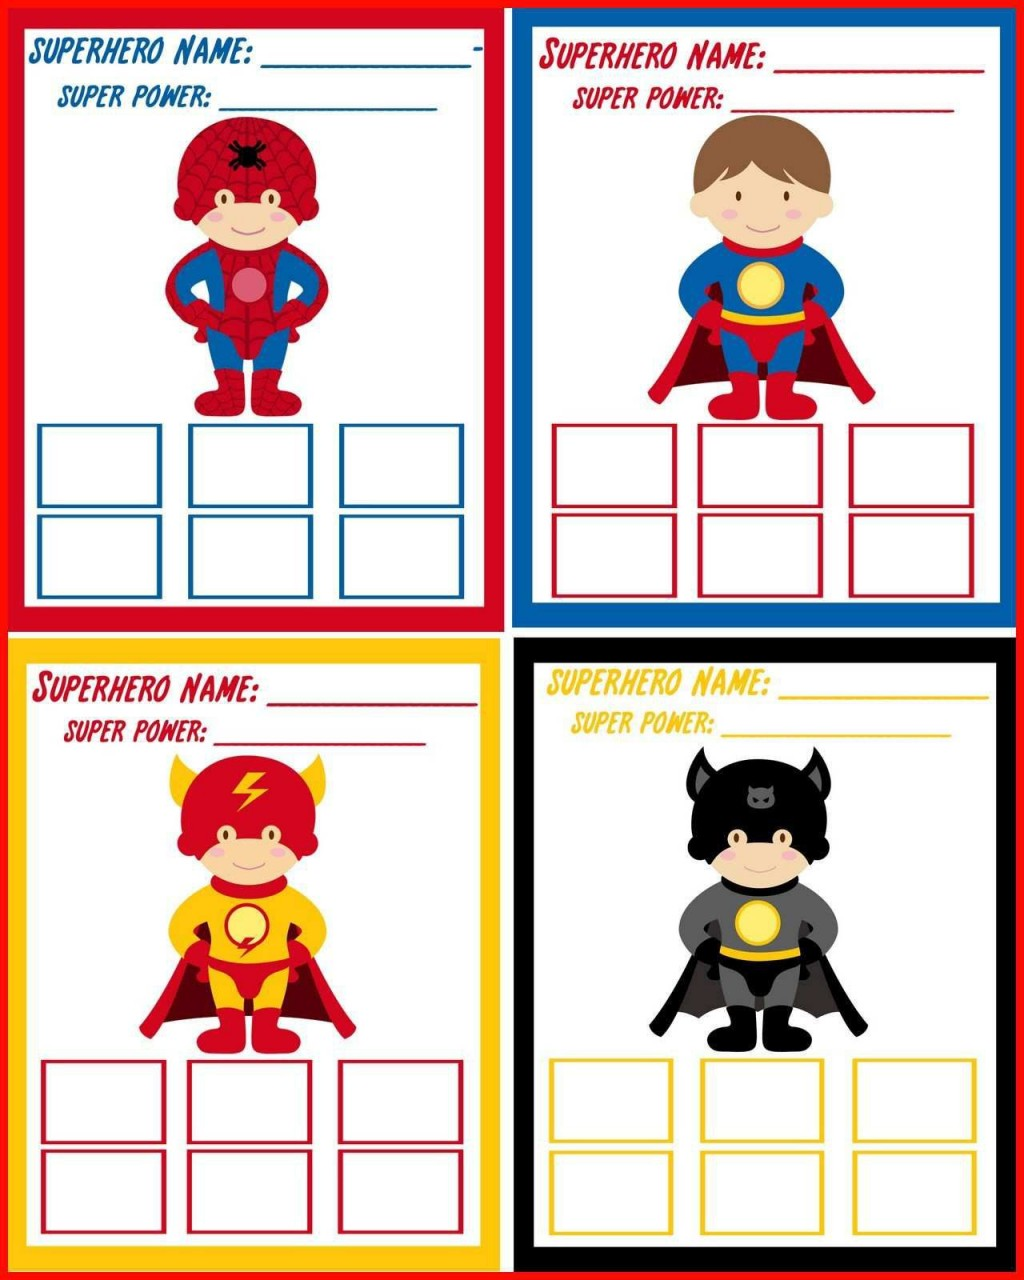 000 Phenomenal Superhero Invitation Template Free High Def  Newspaper Party Birthday InviteLarge